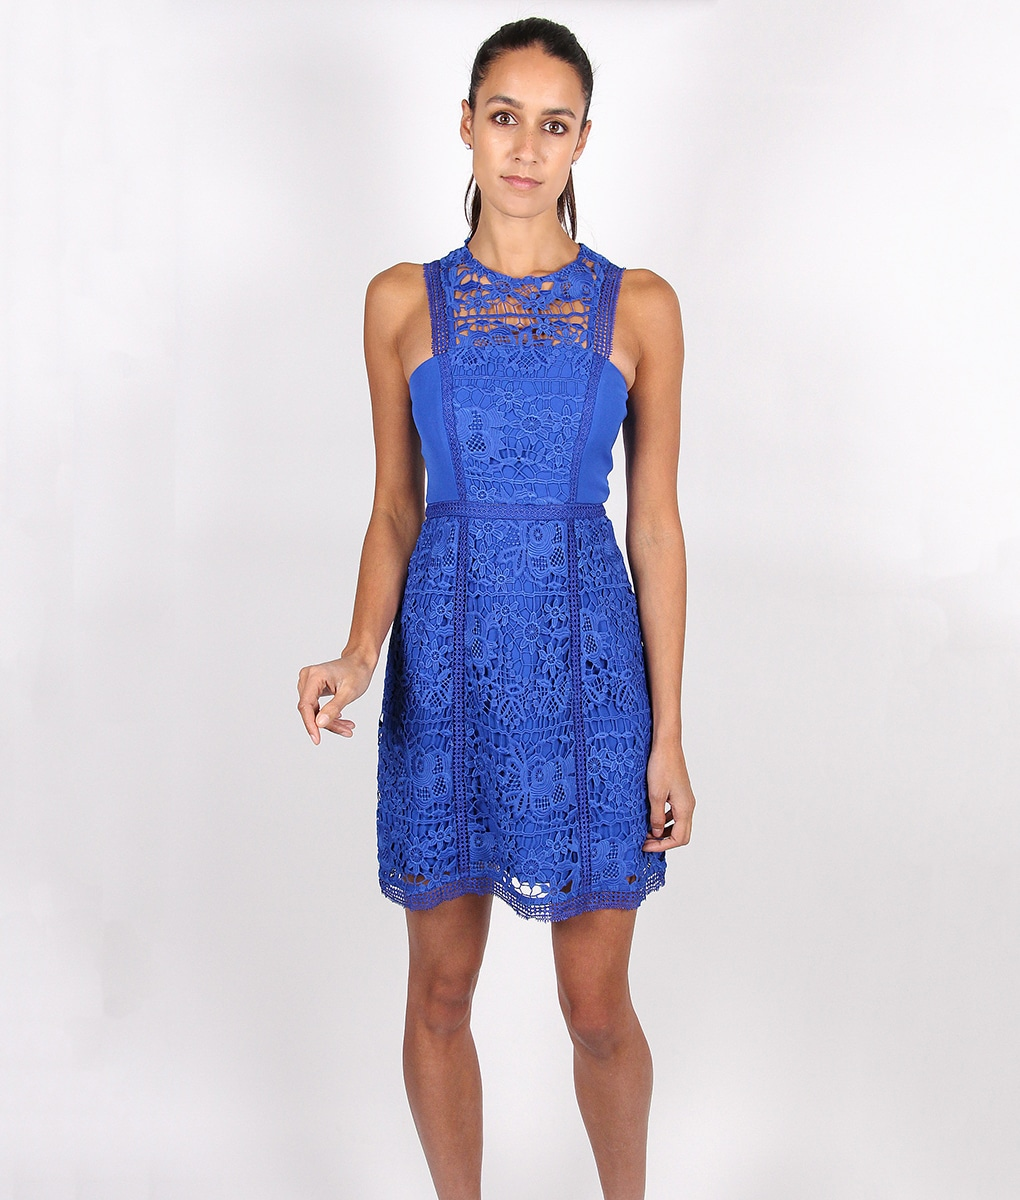 Alila-Bright-Blue-Lace-Dress-for-wedding-by-Lumier-by-Bariano2